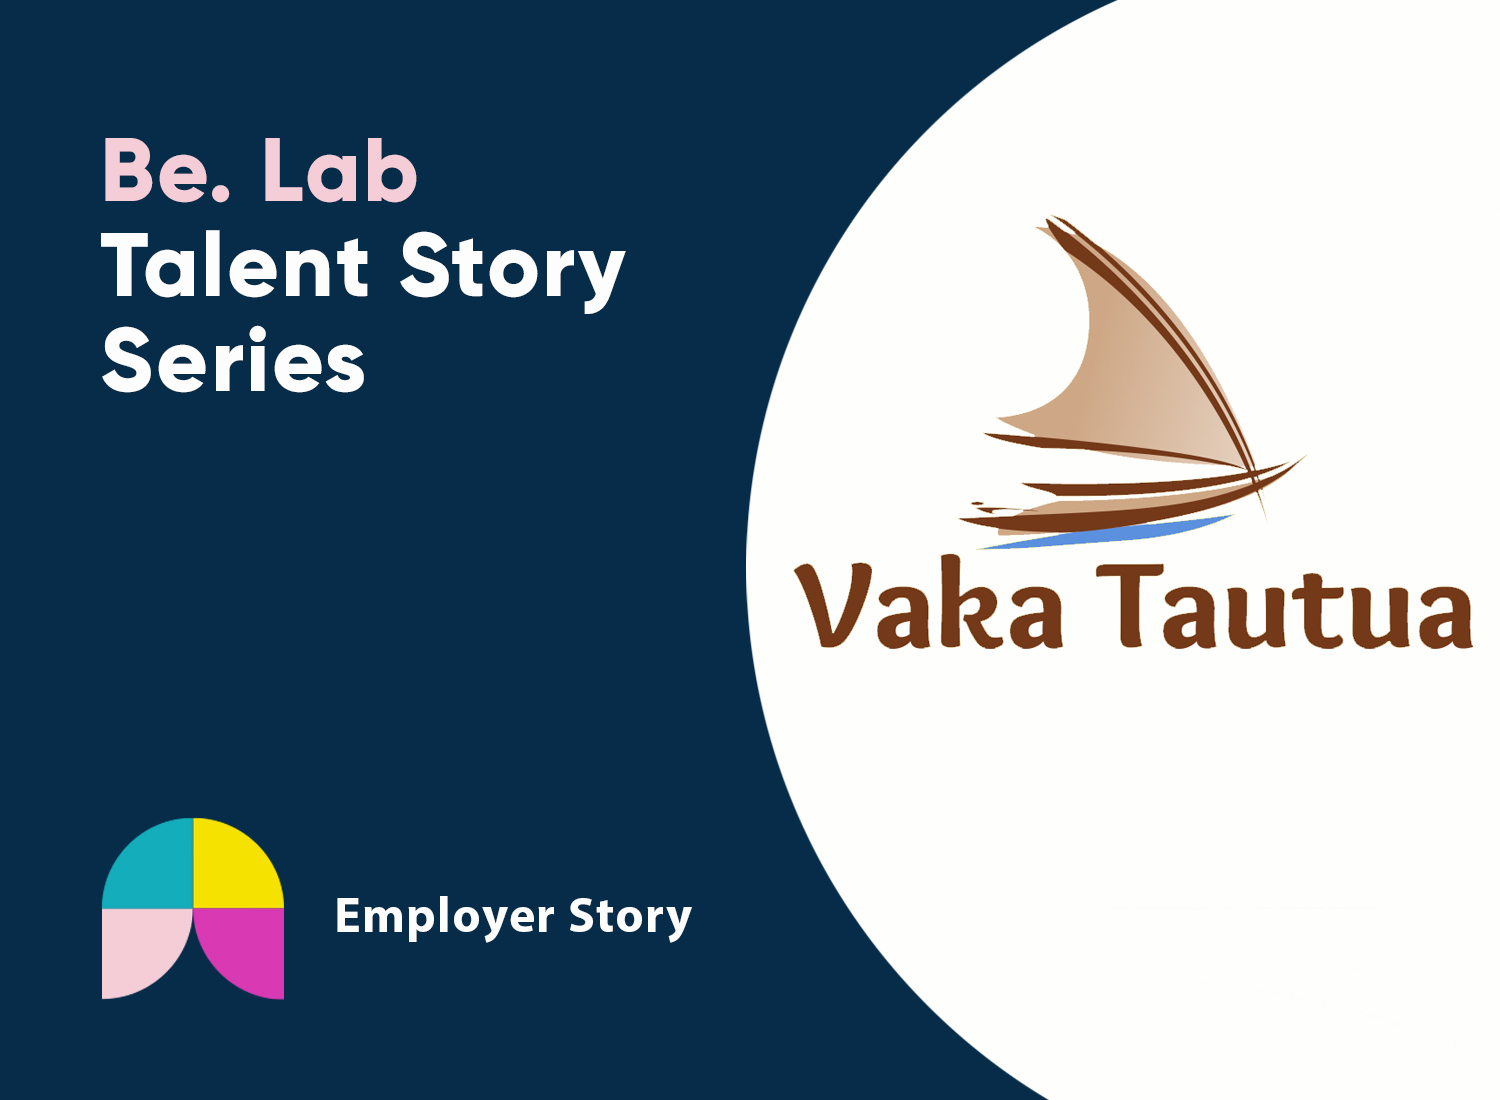 The Vaka Tautua logo on the Be. Lab talent story series navy graphic.